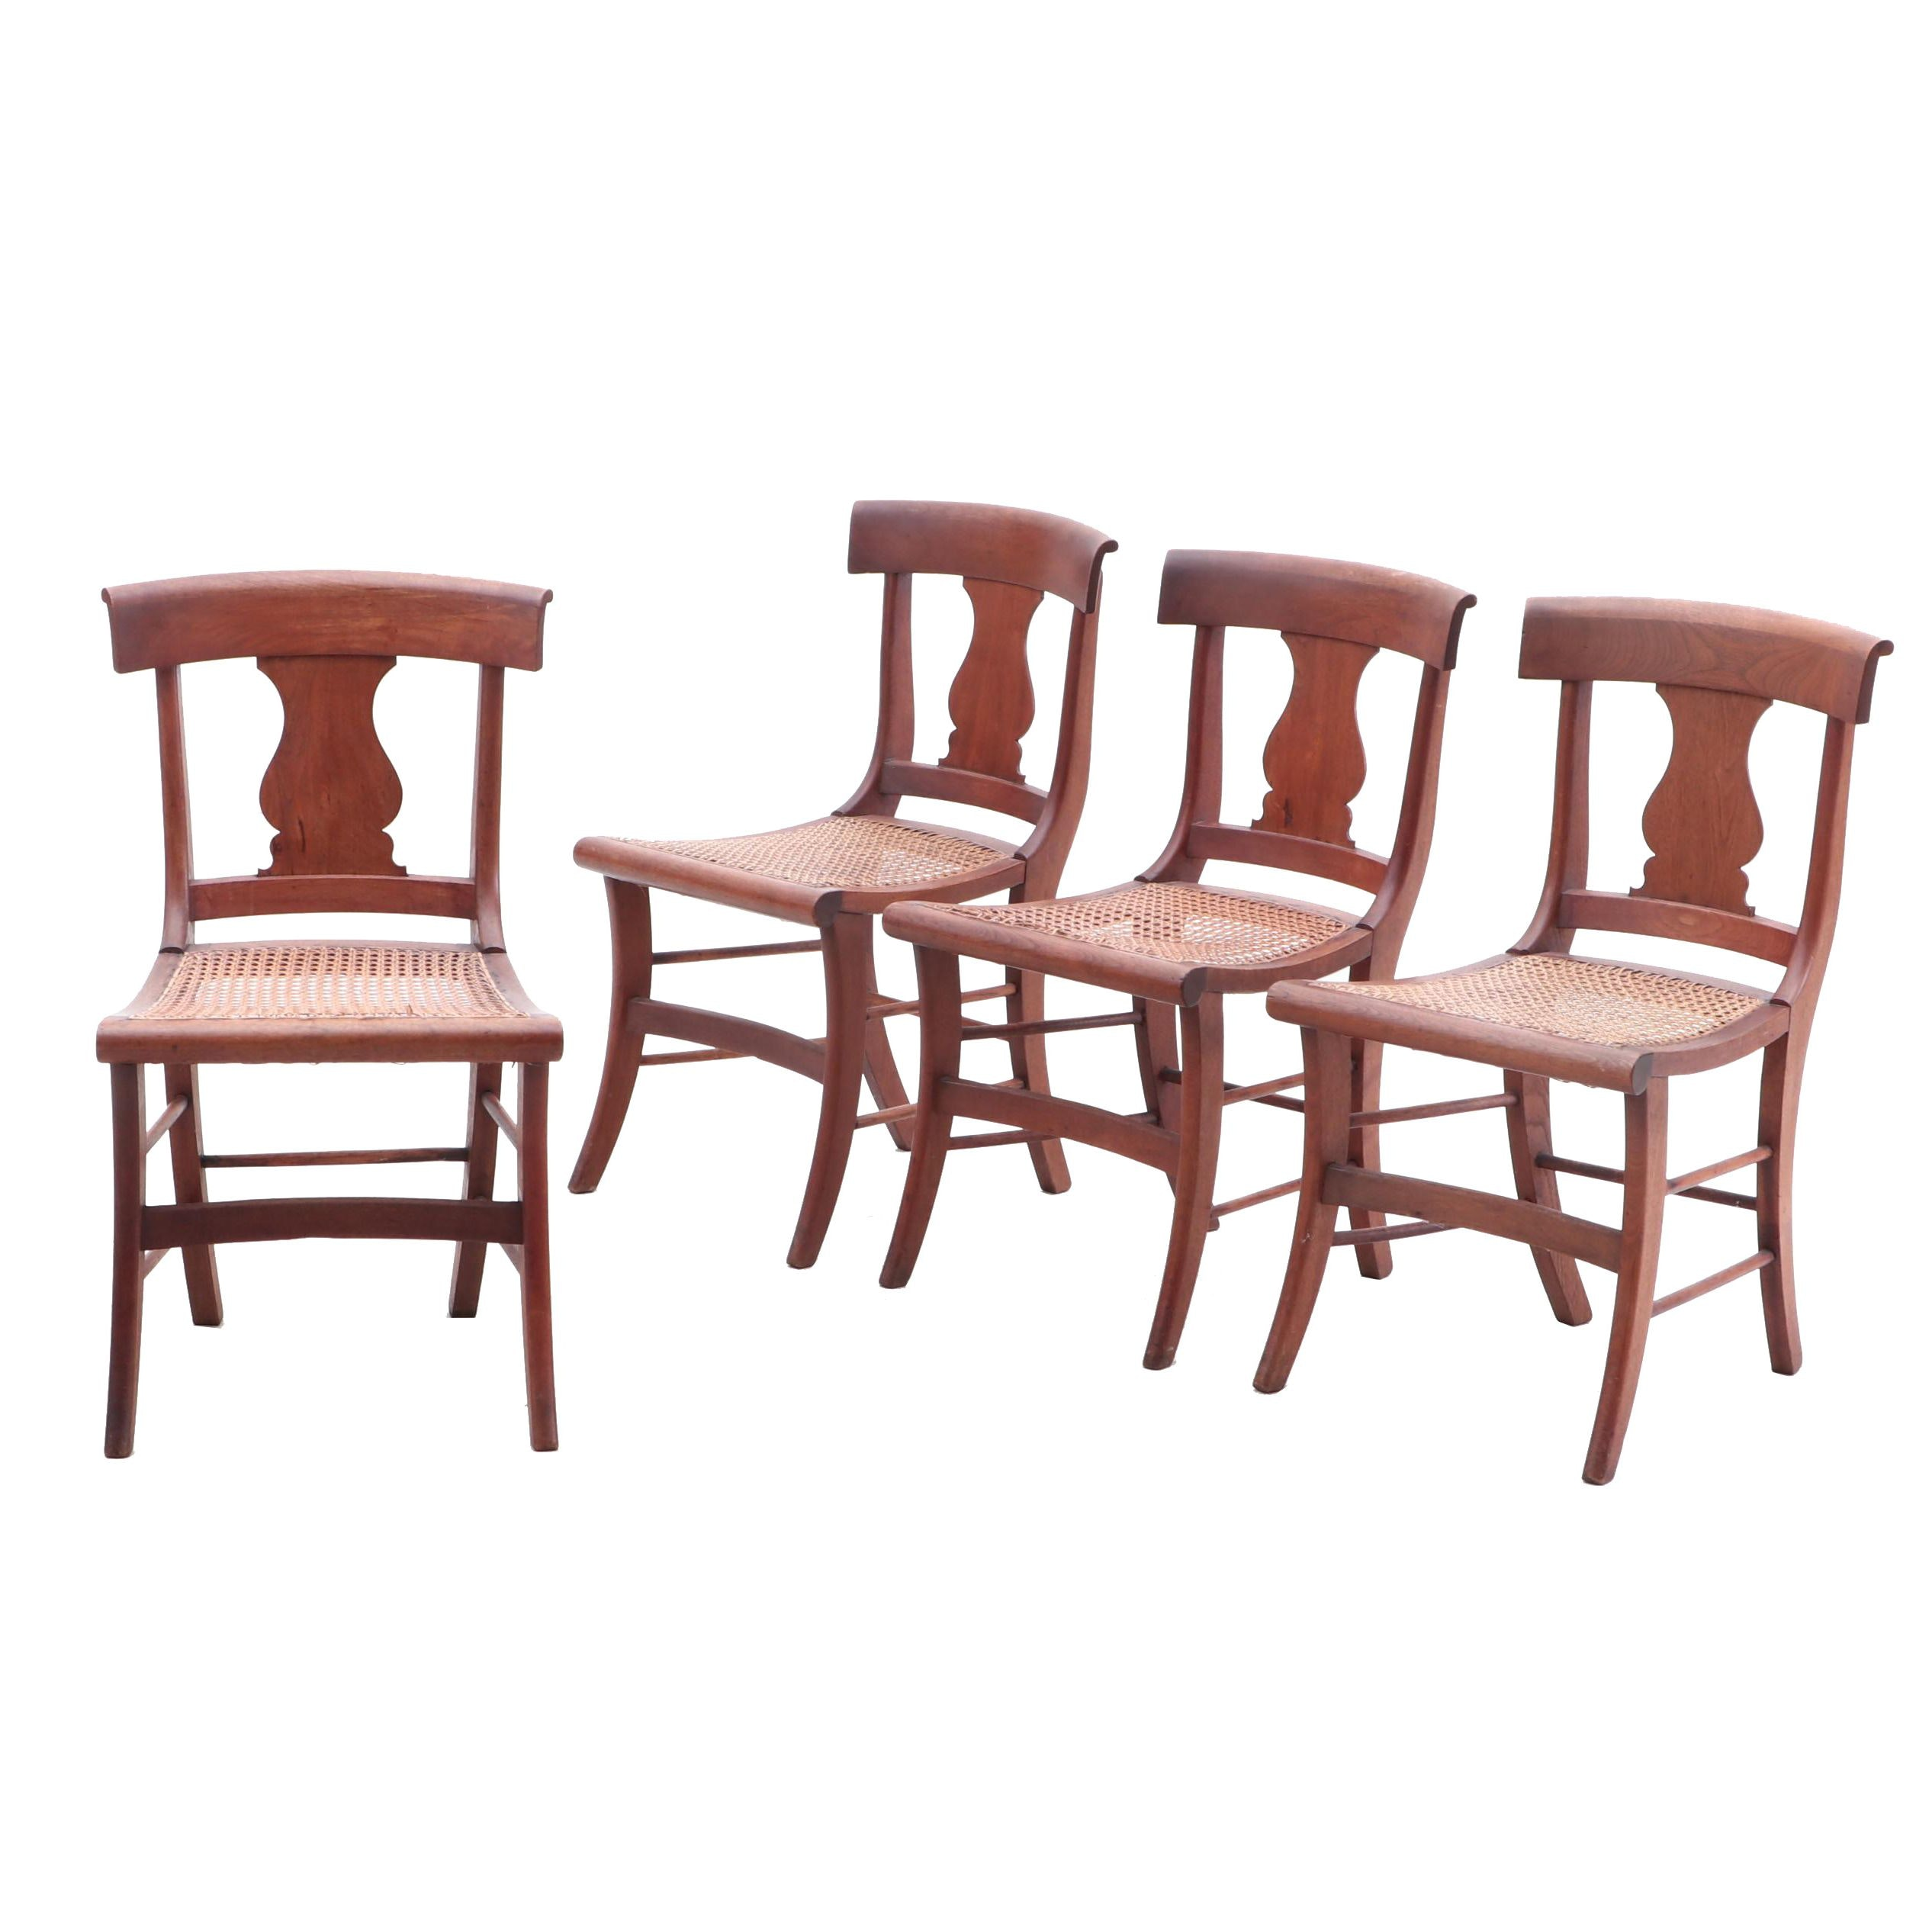 Federal Style Lyre-Back Spline Cane Chairs, Mid 20th Century